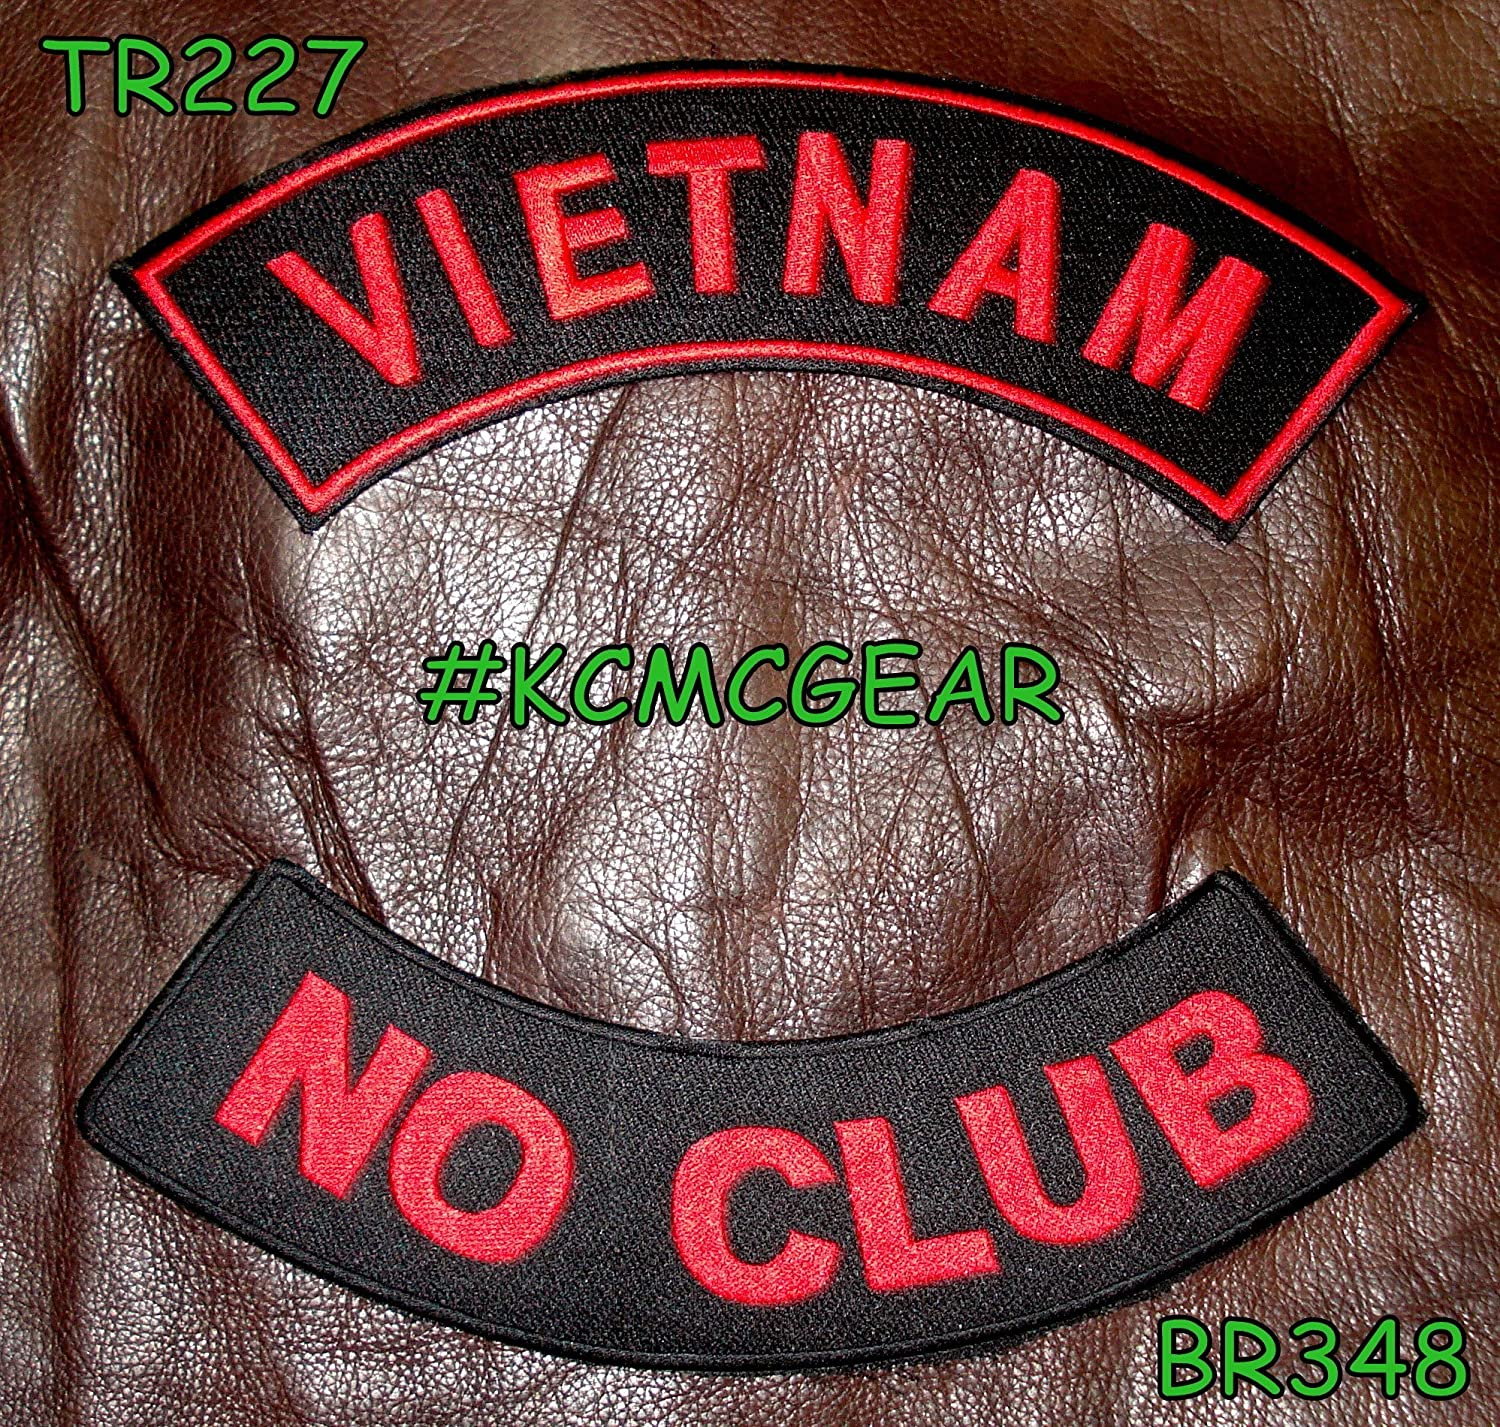 States Traveled LARGE Vest Motorcycle MC Club Embroidered Biker Patch PAT-1712